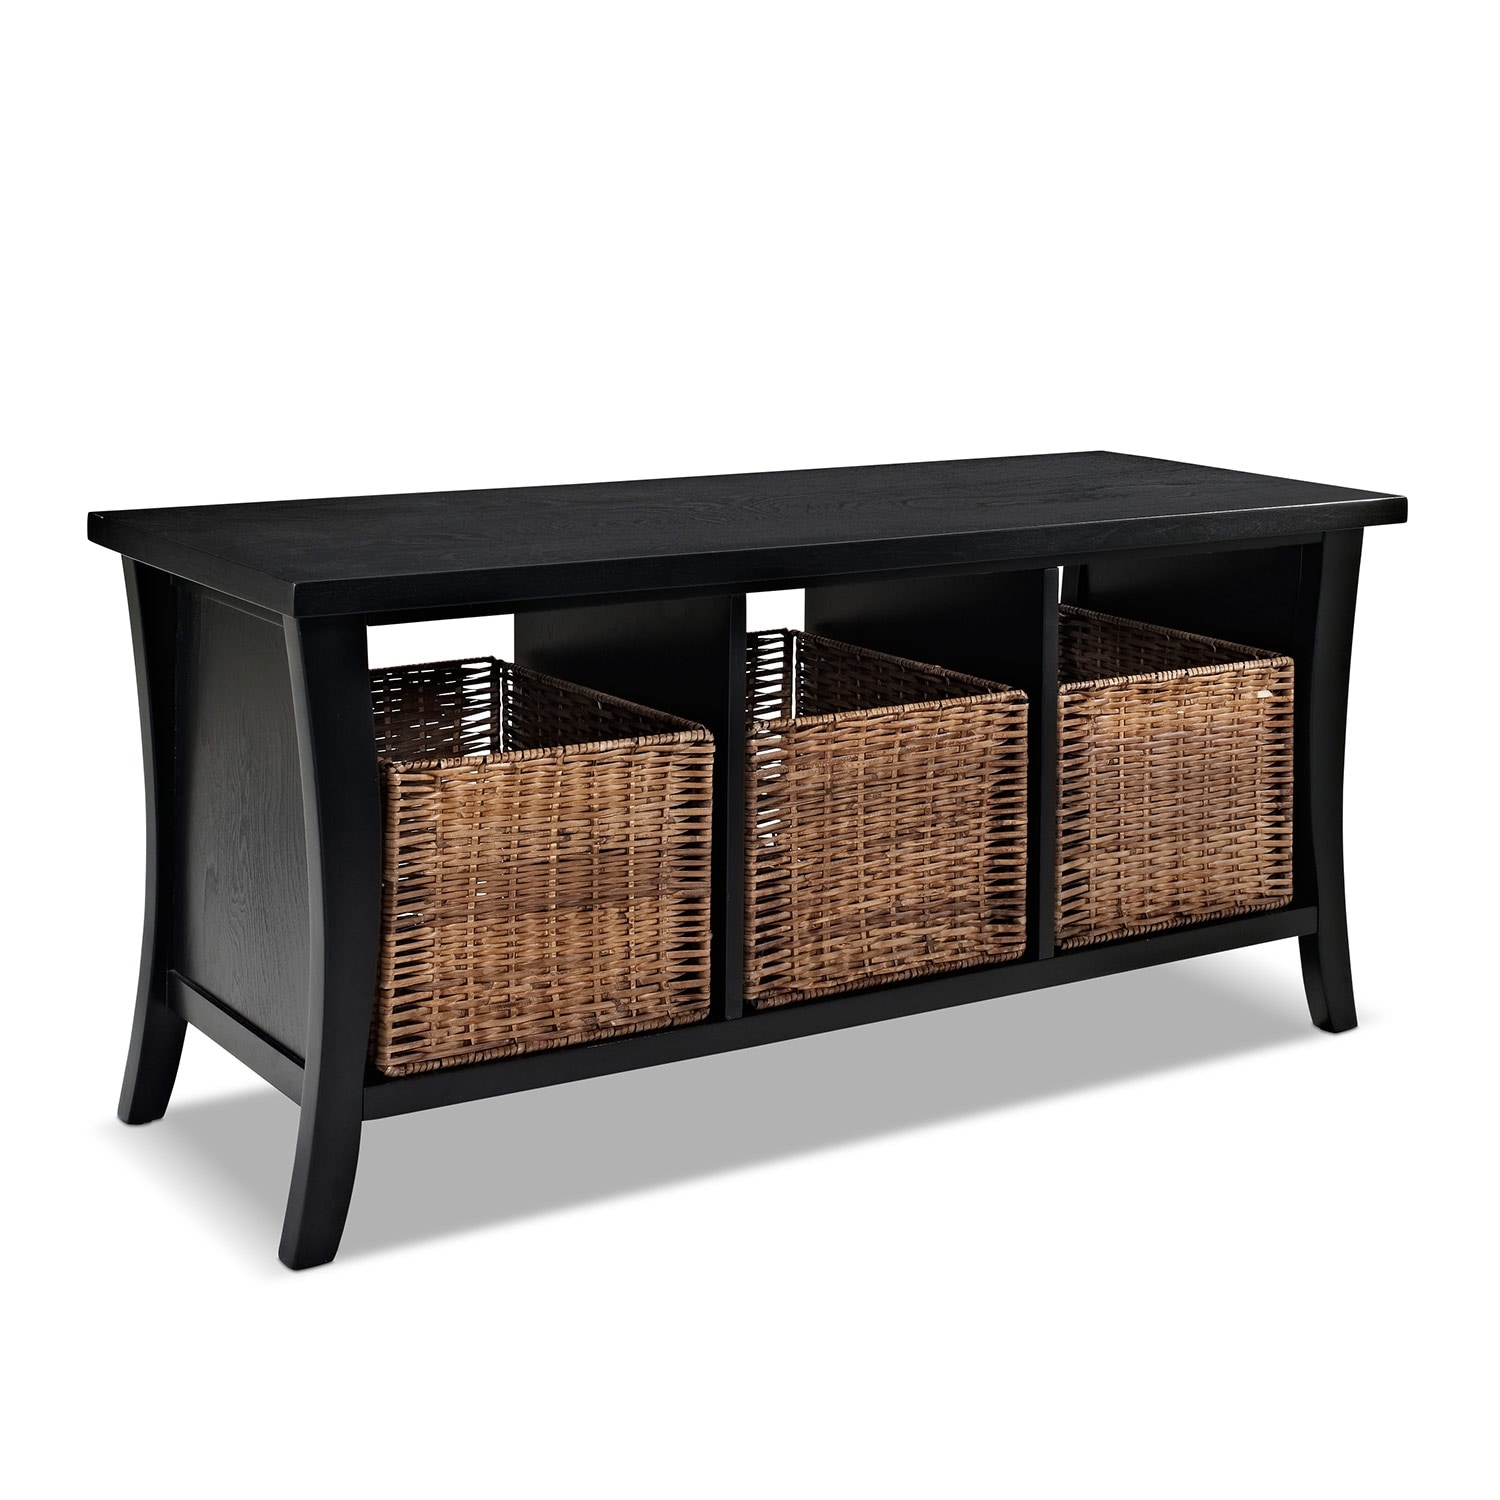 Accent and Occasional Furniture - Mae Entryway Storage Bench - Black  sc 1 st  Value City Furniture & Mae Entryway Storage Bench - Black | Value City Furniture and Mattresses